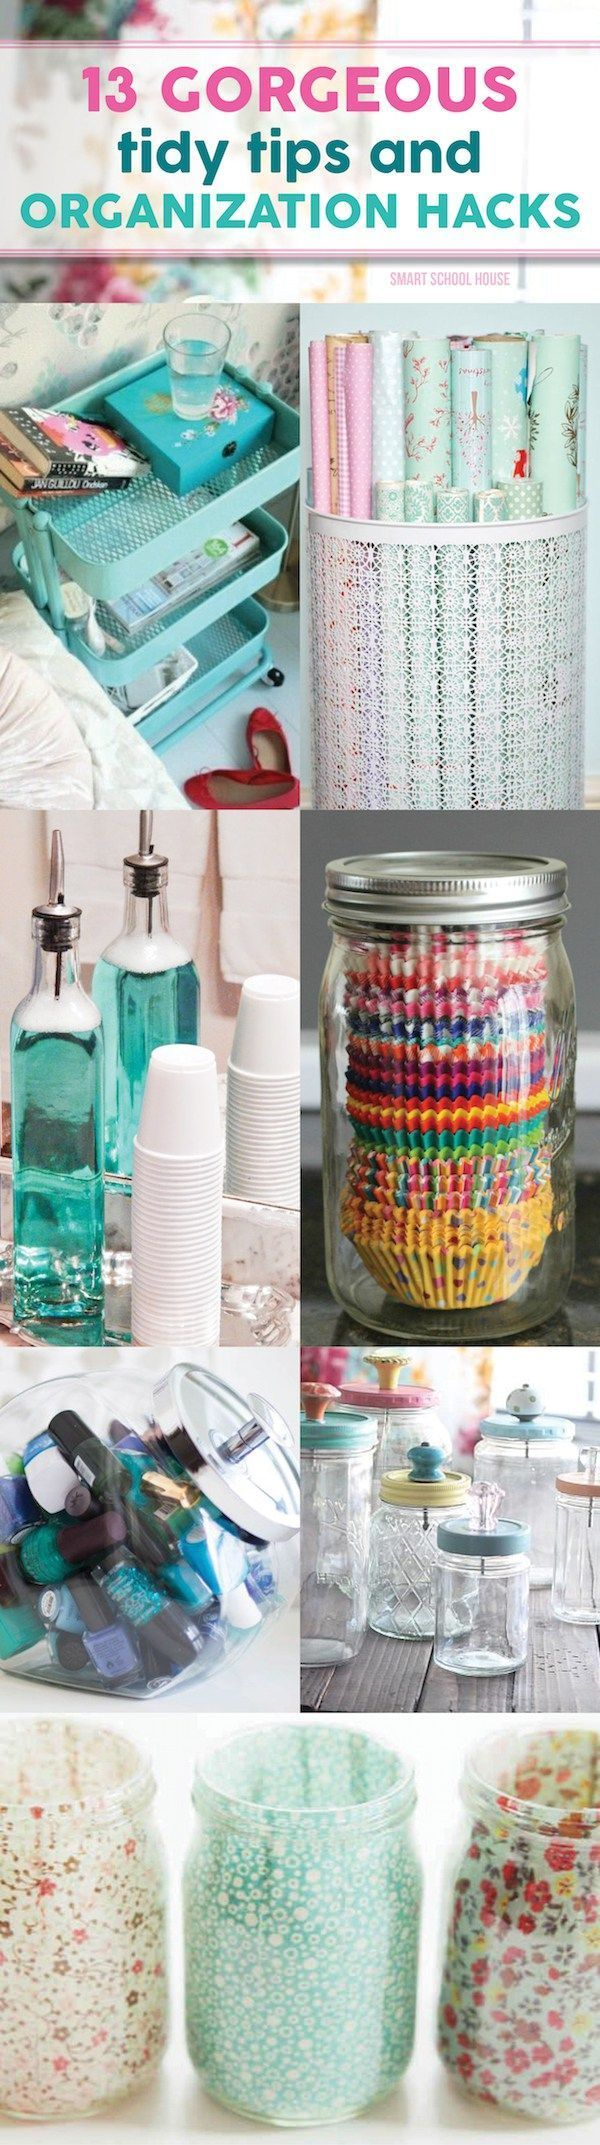 best projects to try images on pinterest creative ideas diets